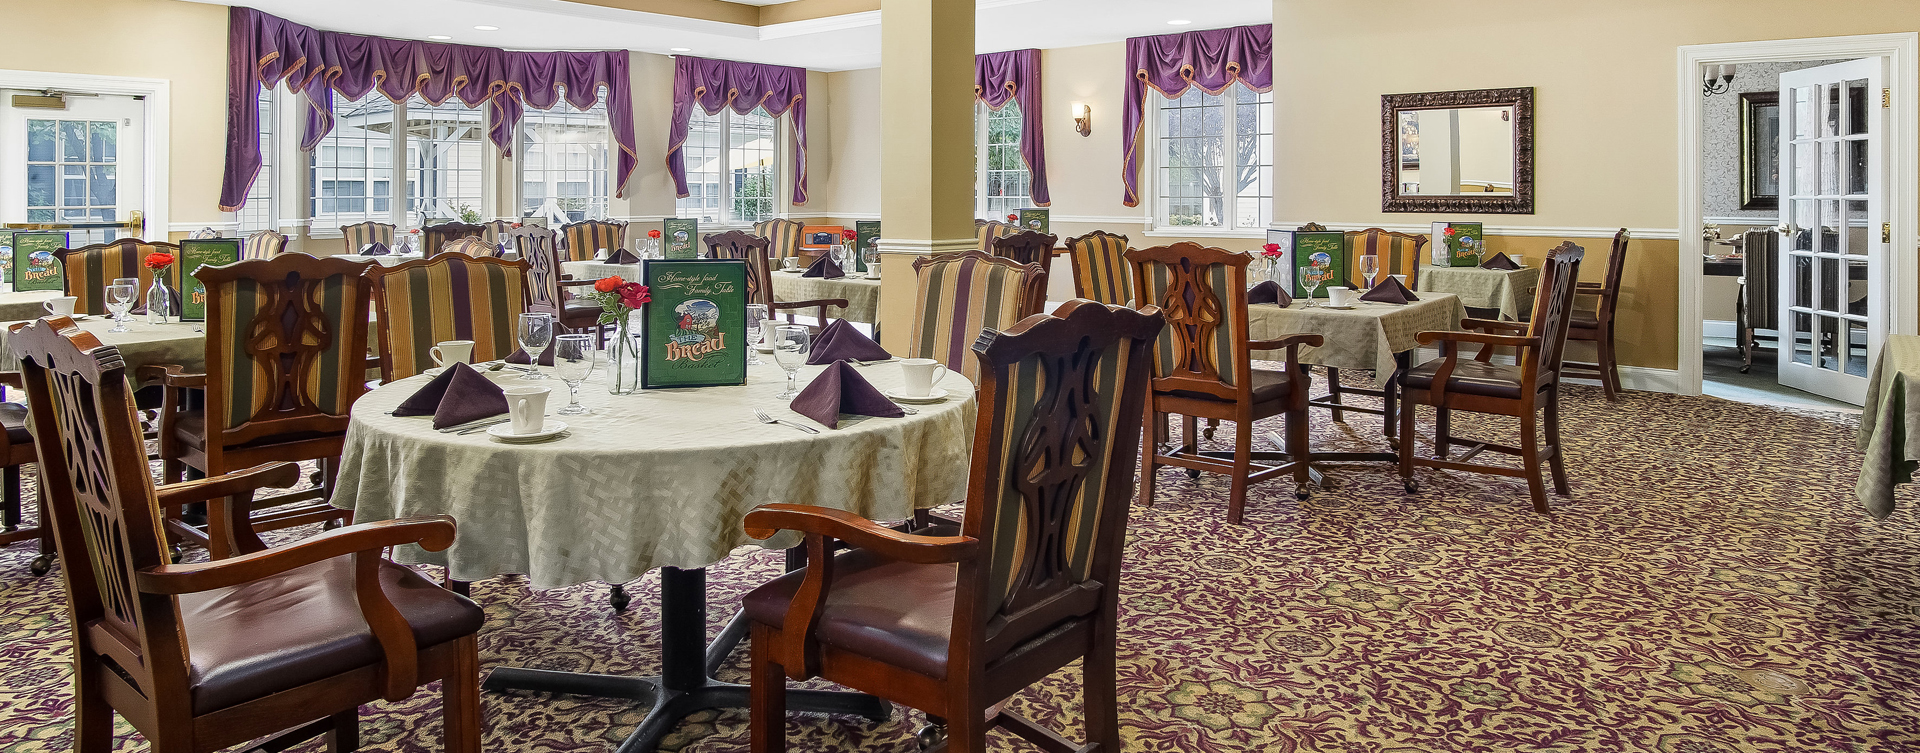 Enjoy restaurant -style meals served three times a day in our dining room at Bickford of Overland Park